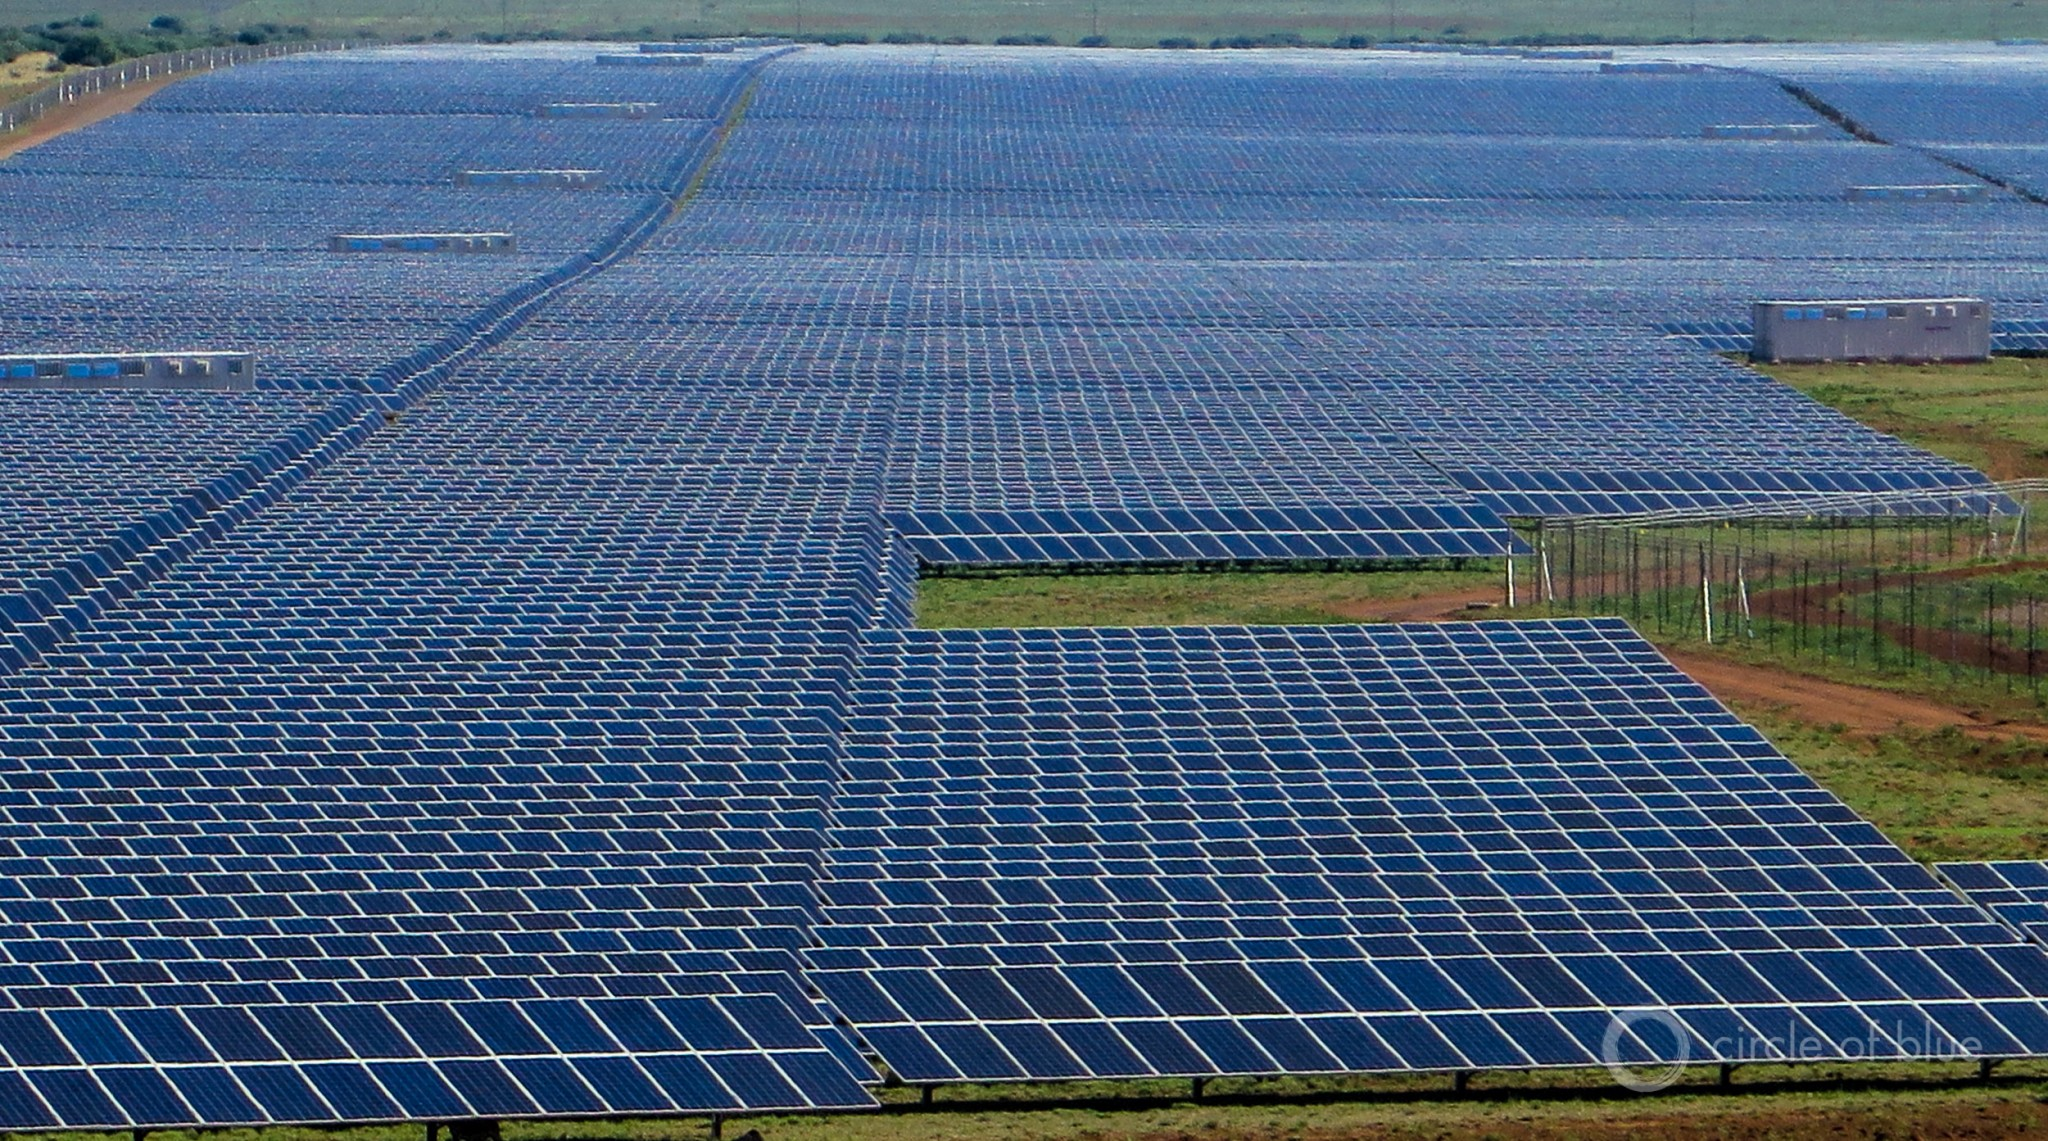 The expanse of electricity generating panels at the Jasper solar photovoltaic power station in the Northern Cape reflects the sun and the sky, and is so large that from a distance it looks like shimmering blue lake. Photo © Keith Schneider / Circle of Blue